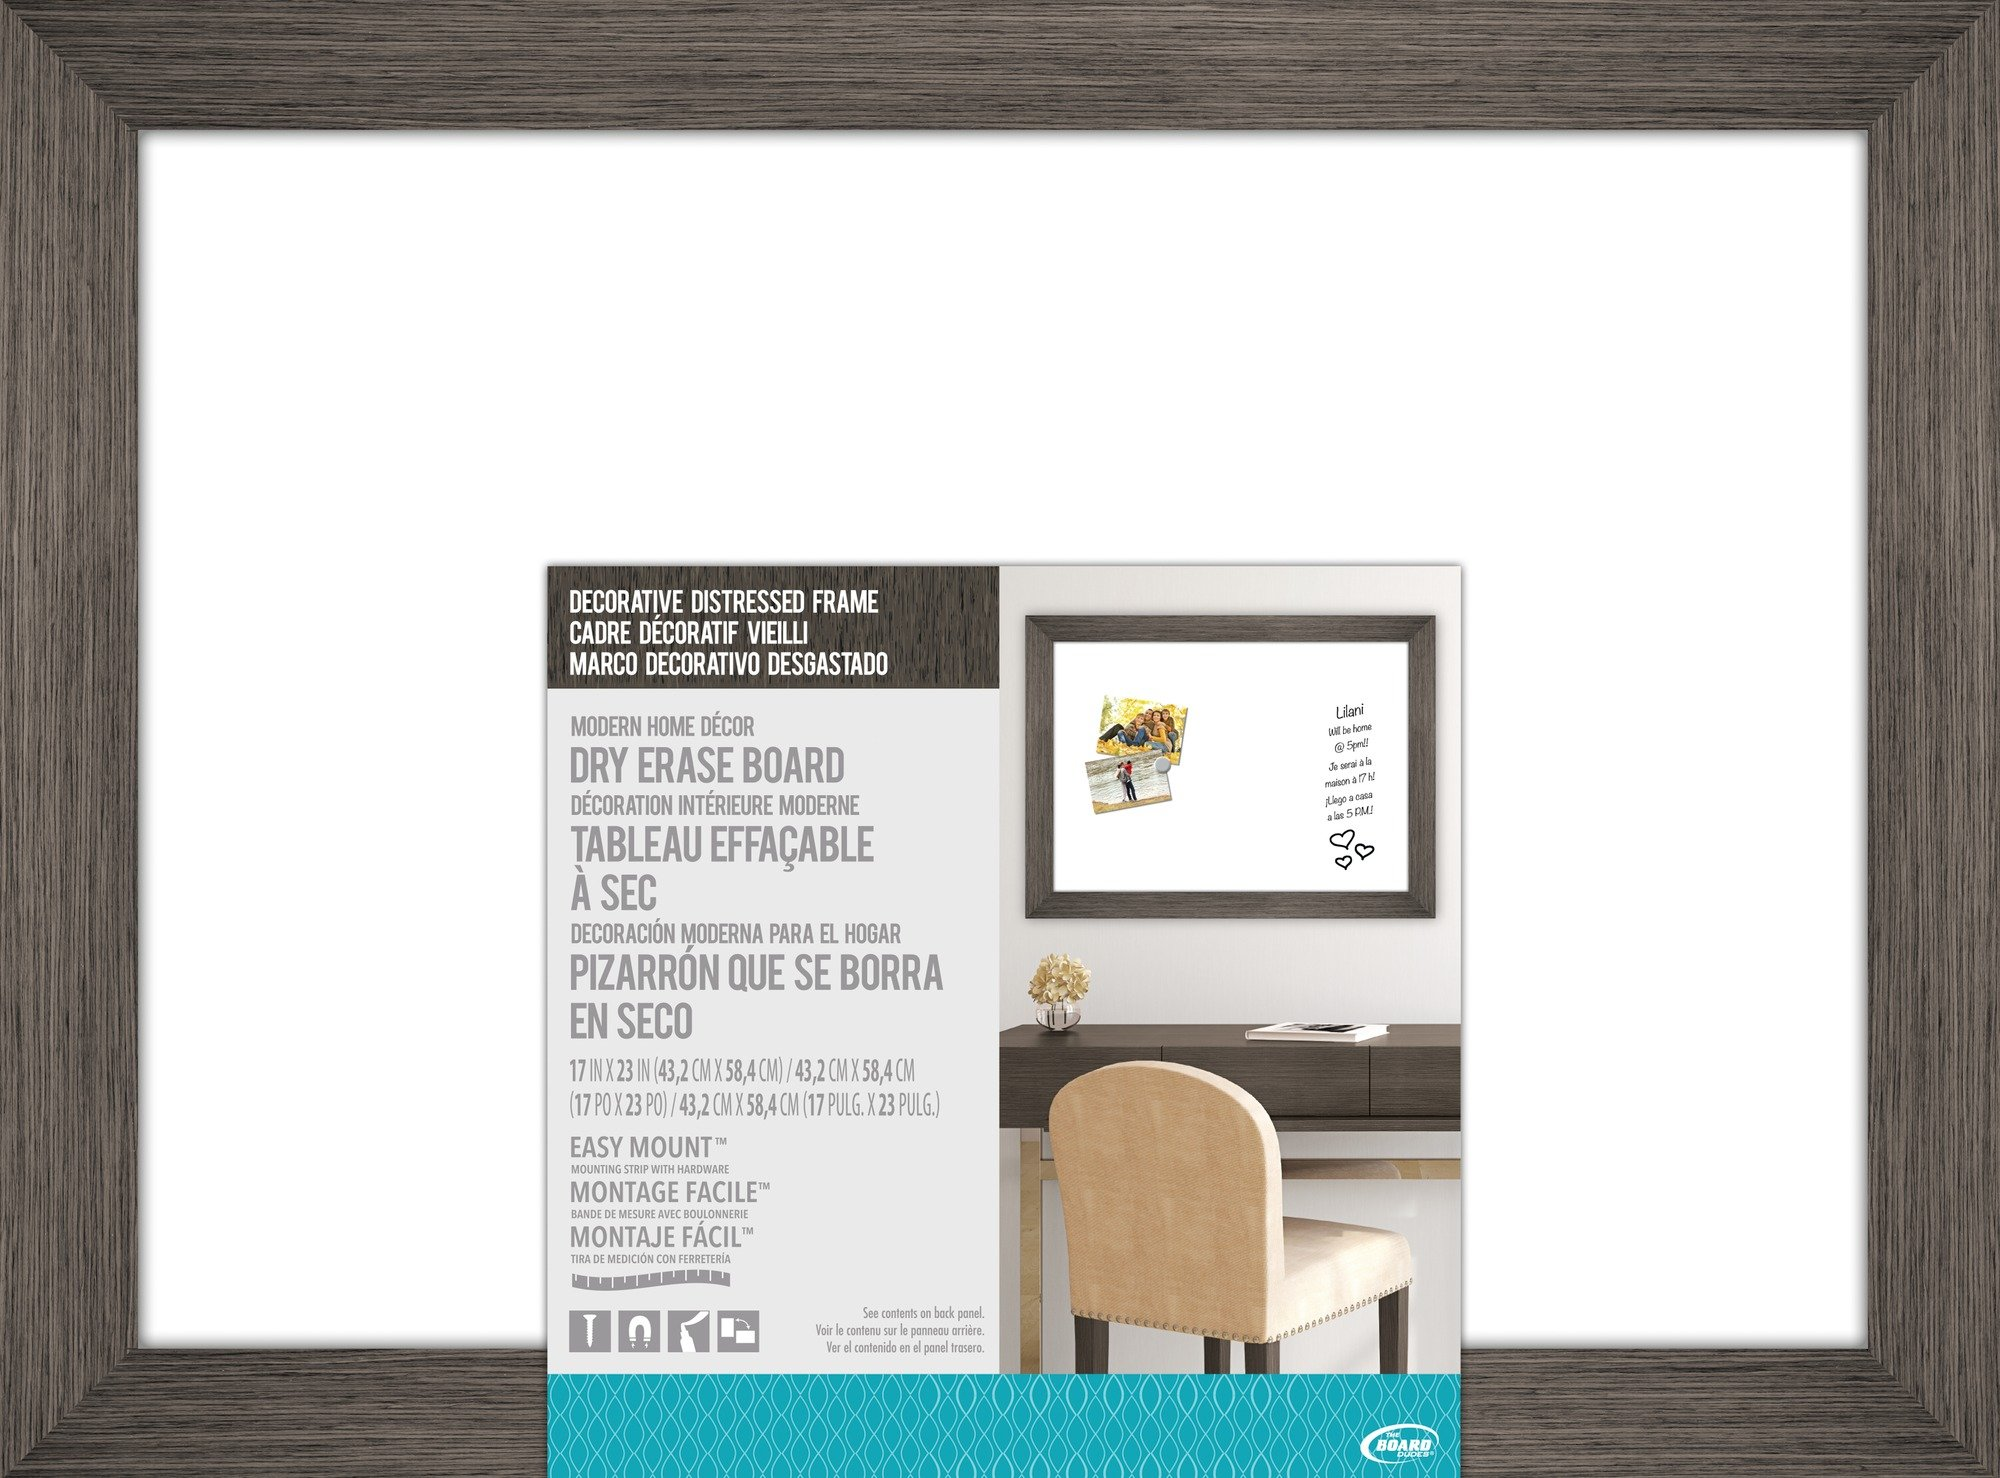 The Board Dudes 17″X 23″ Dry Erase Board with Decorative Distressed Wood Frame